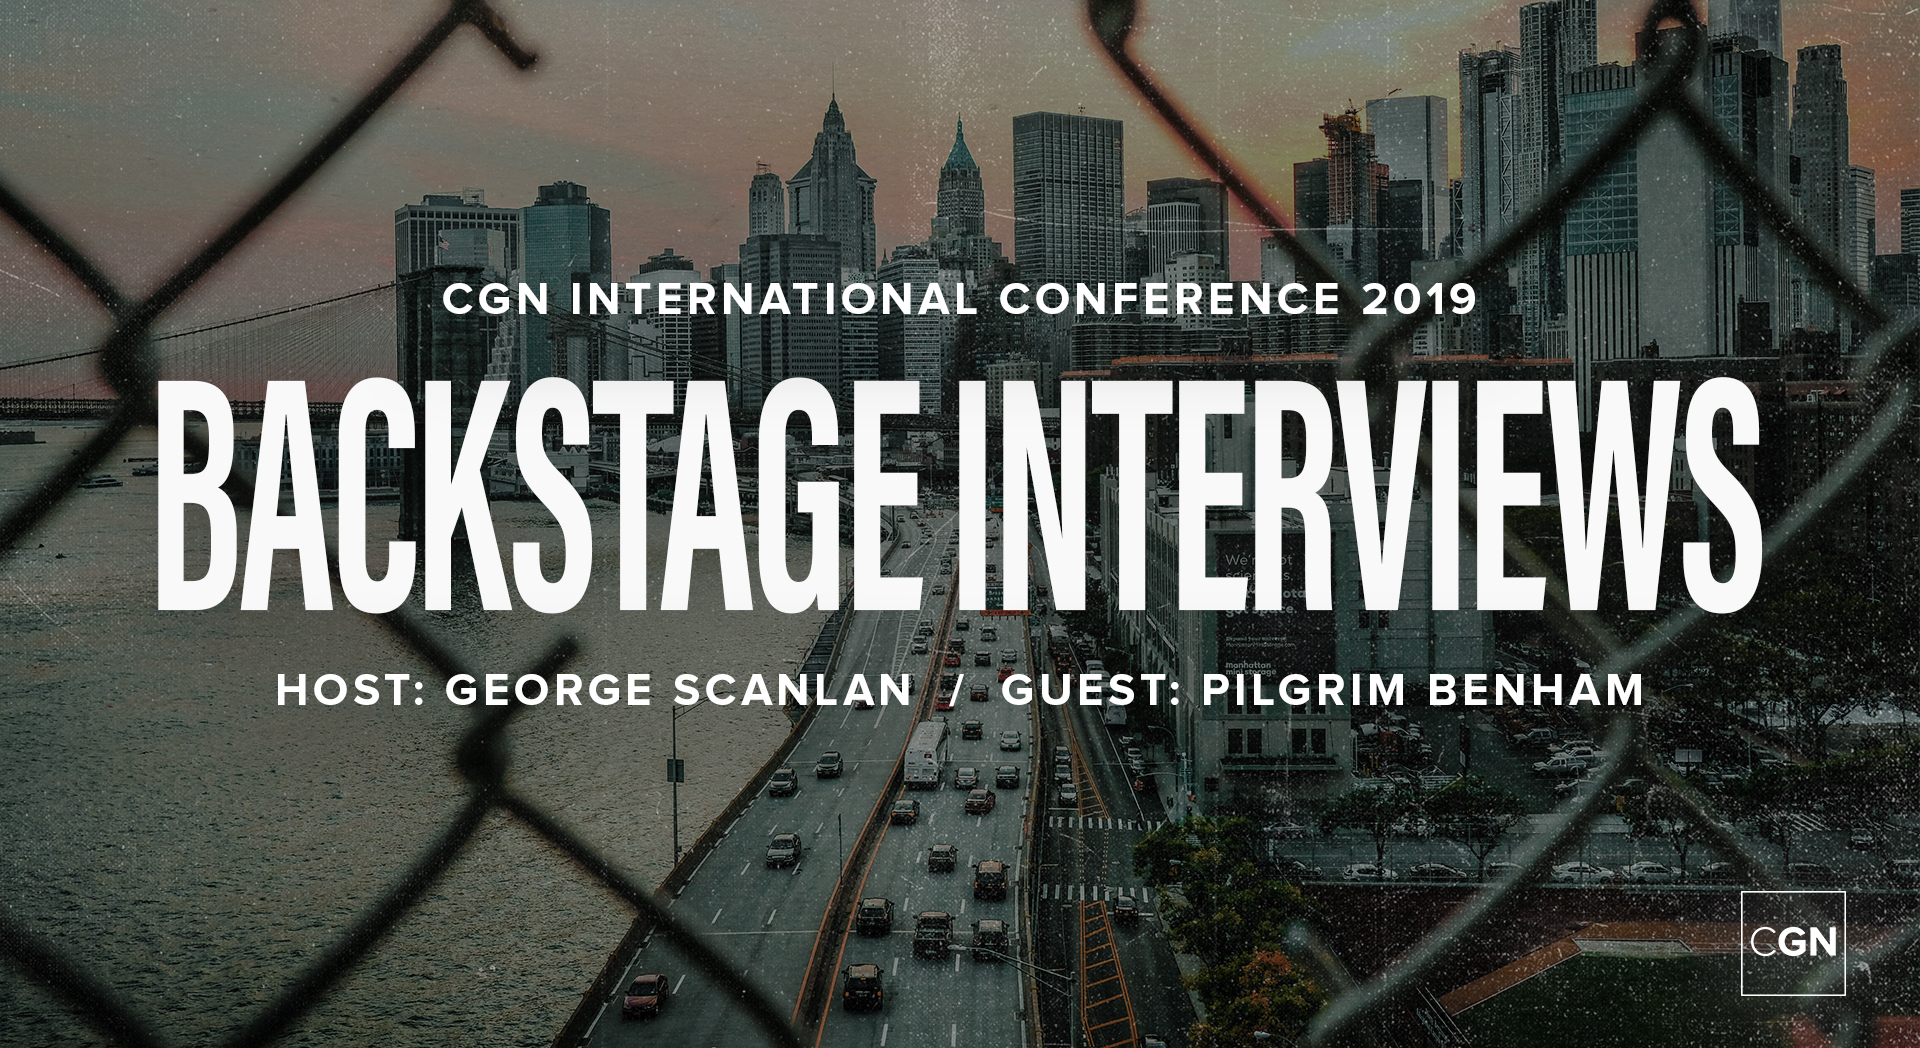 Backstage Interview - Pilgrim Benham